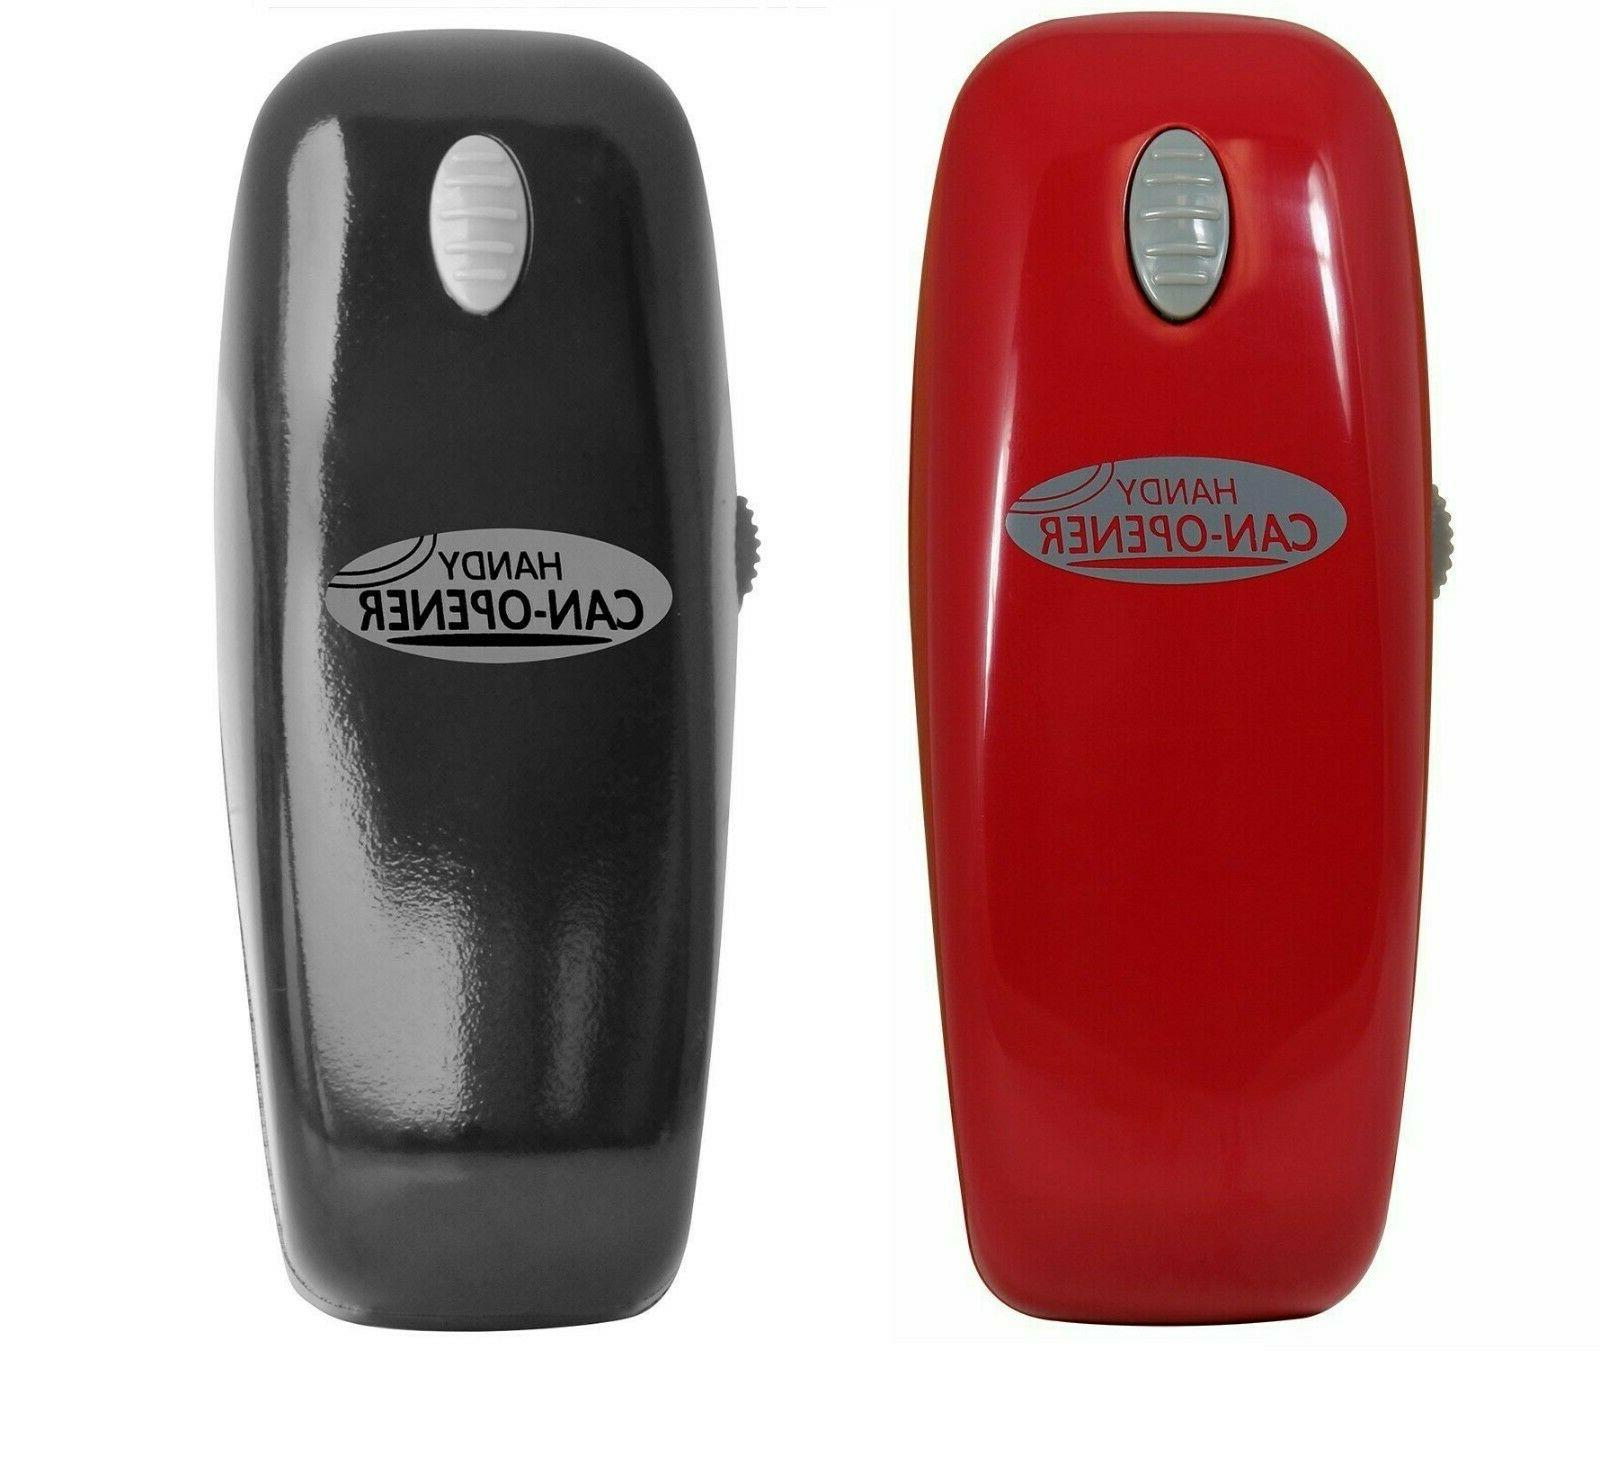 new handy automatic can opener in black